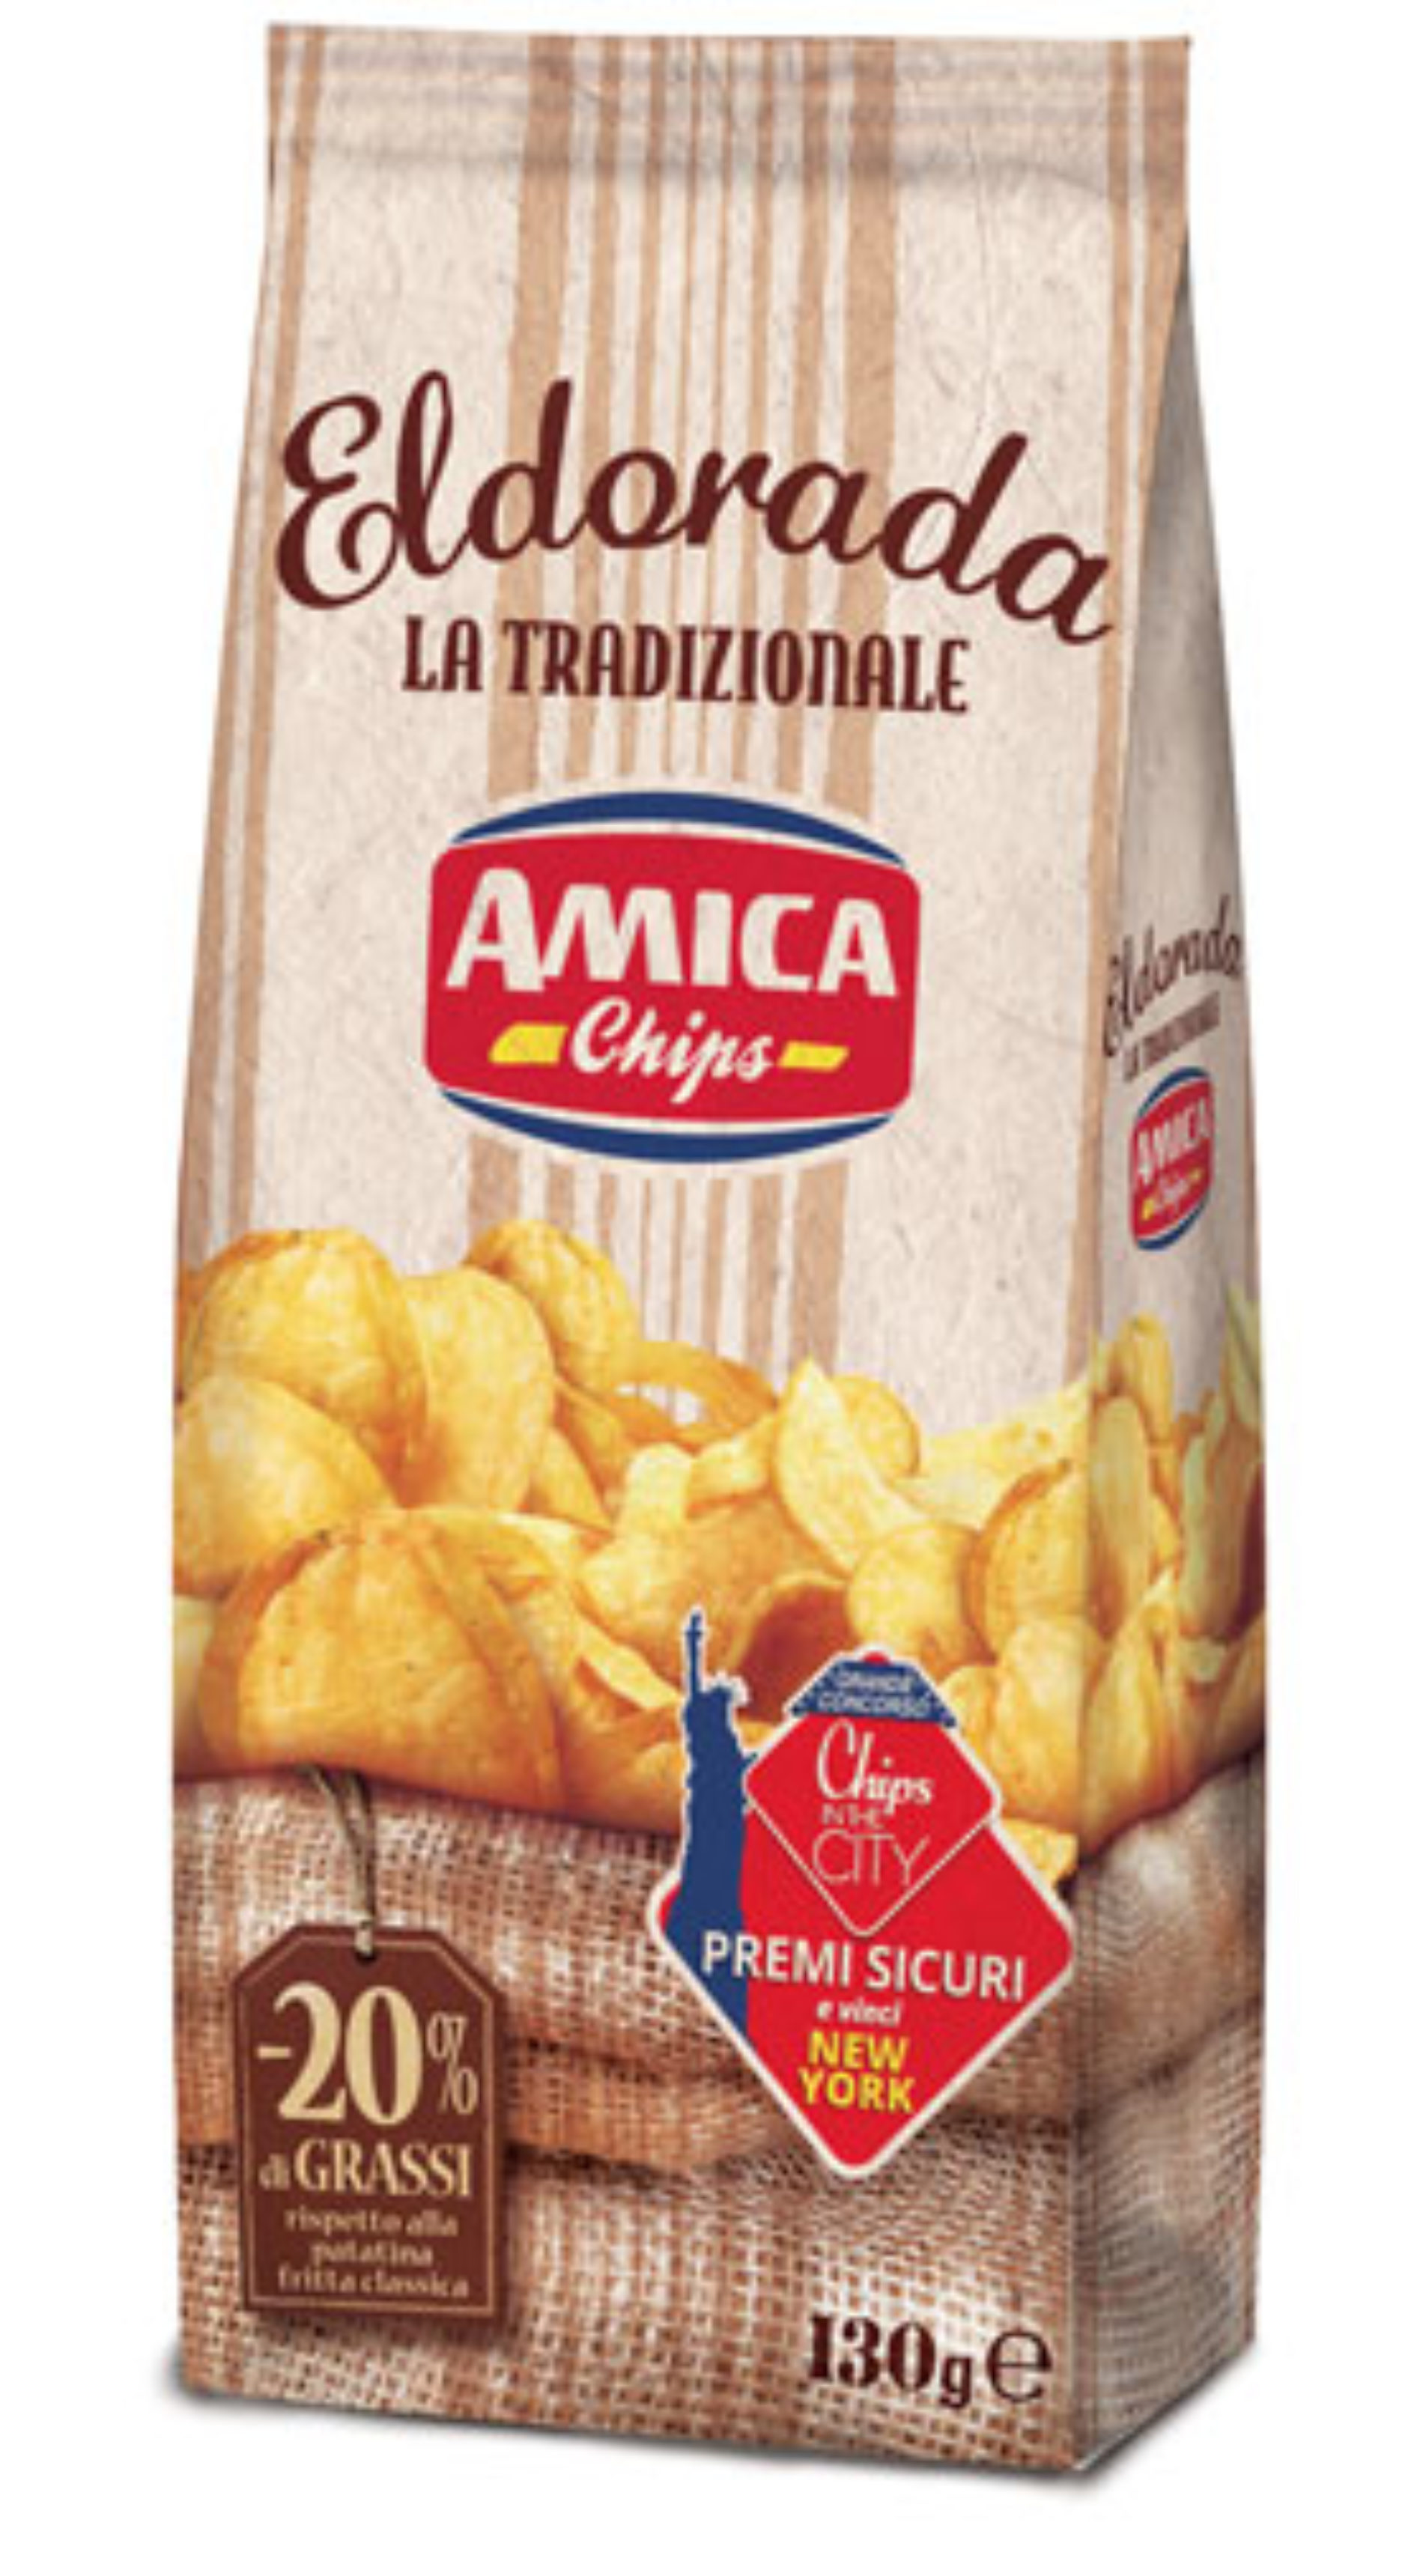 Amica Chips Autunno 2013